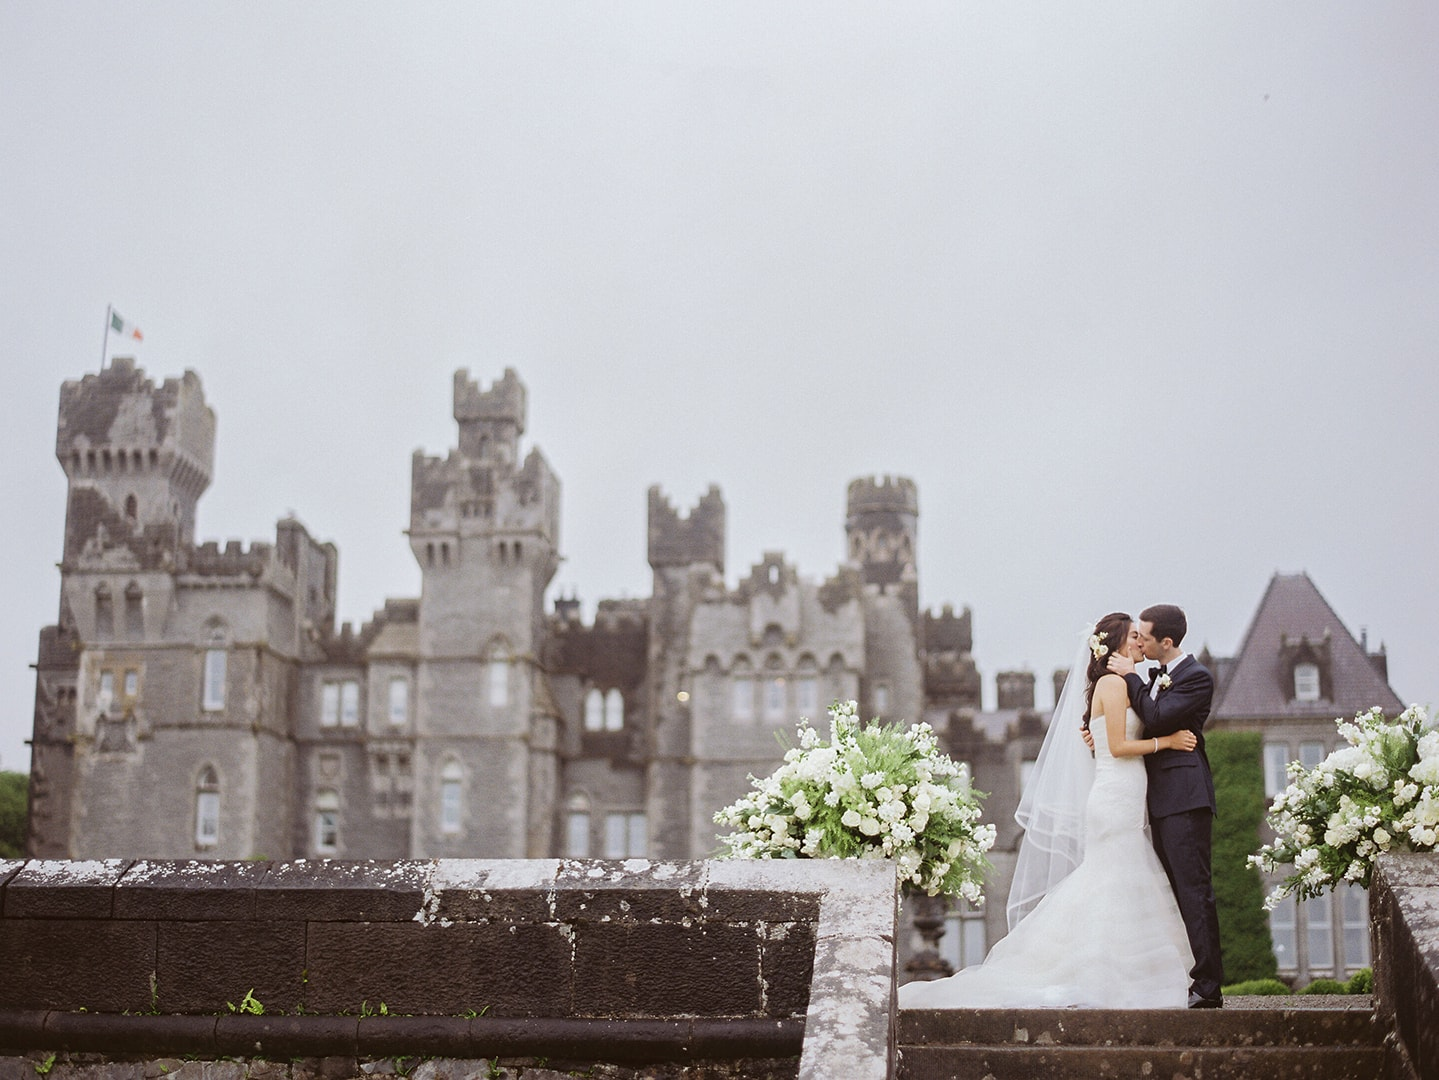 Ashford Castle, Wedding ceremony, Marquee ceremony, Event planner in Ireland, Wedding Planner in Ireland, Destination Weddings, Olivia Buckley International